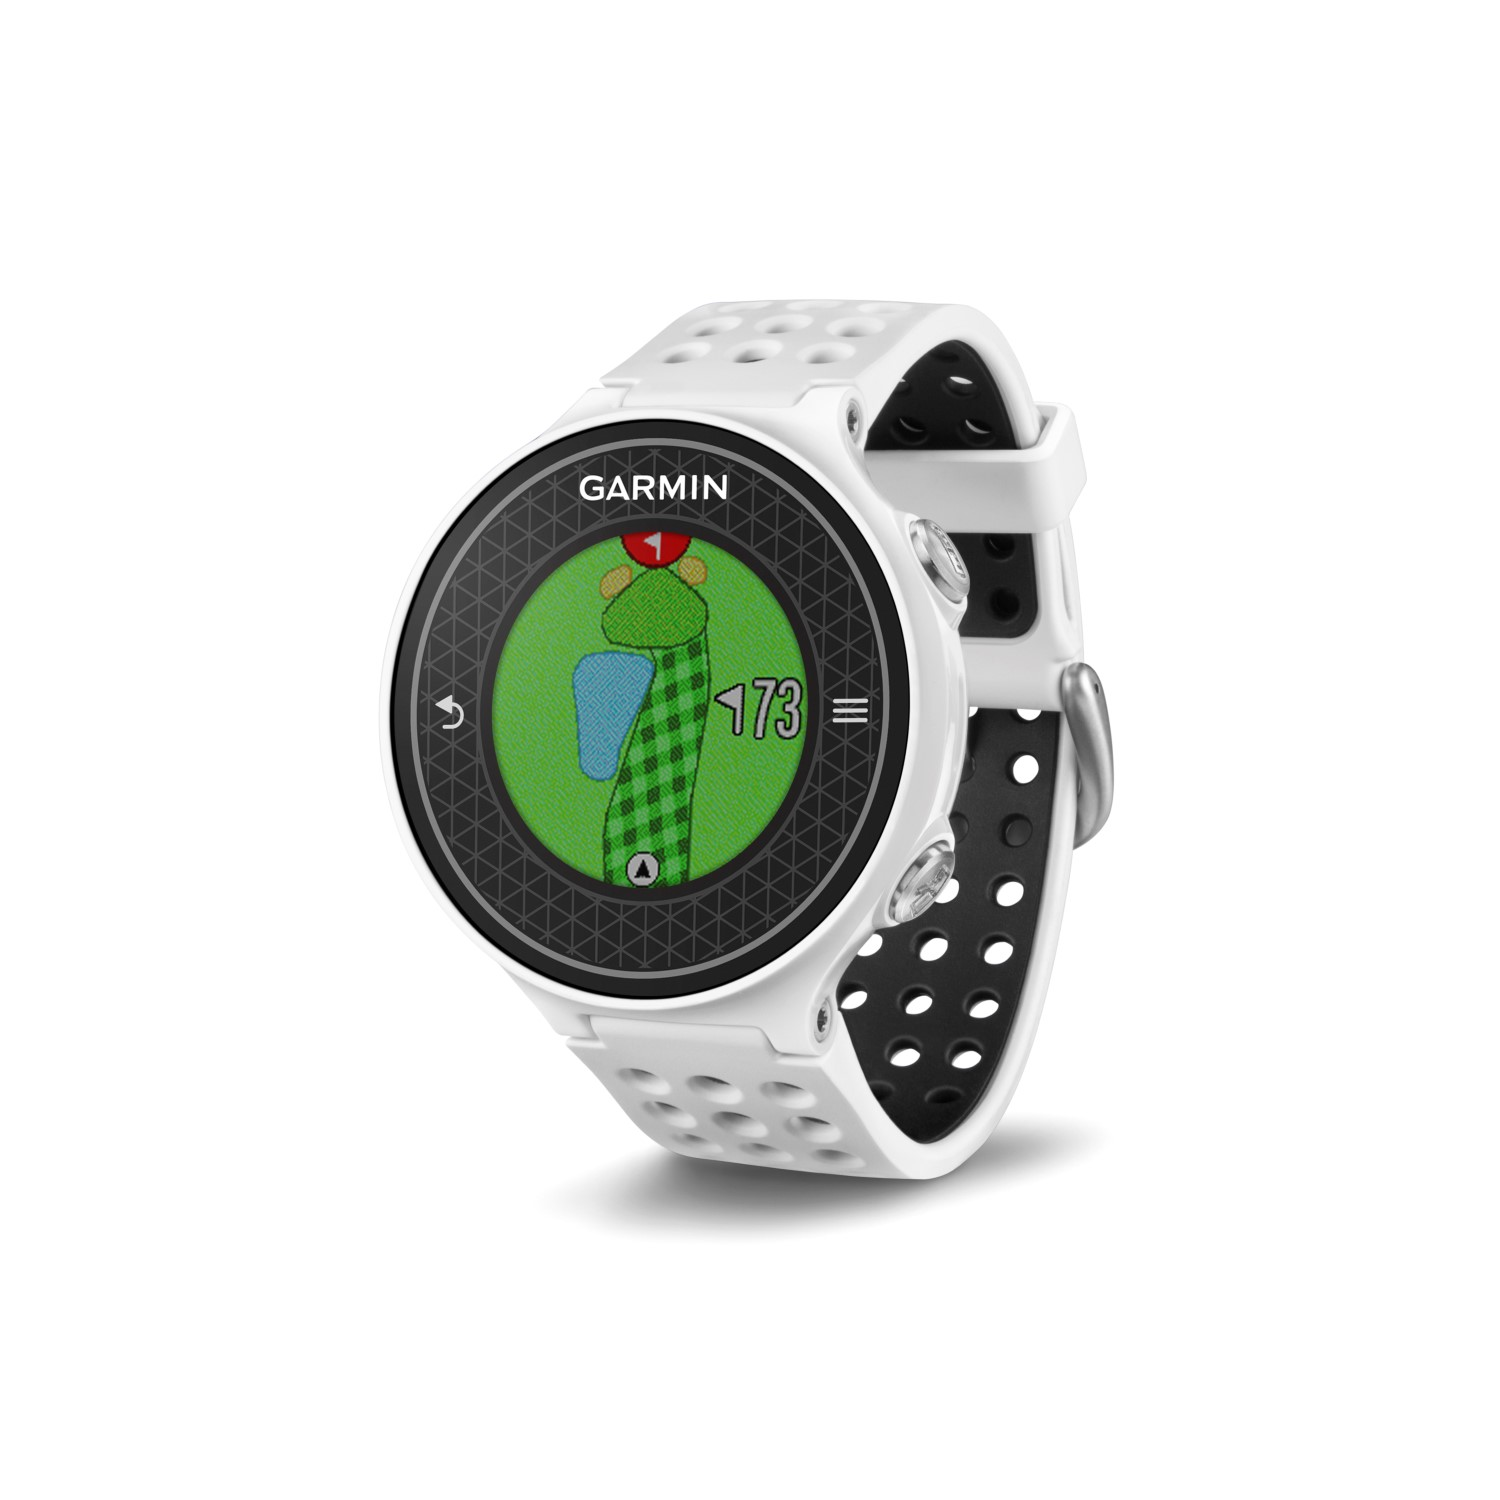 garmin approach s6 gps golf watch white black. Black Bedroom Furniture Sets. Home Design Ideas